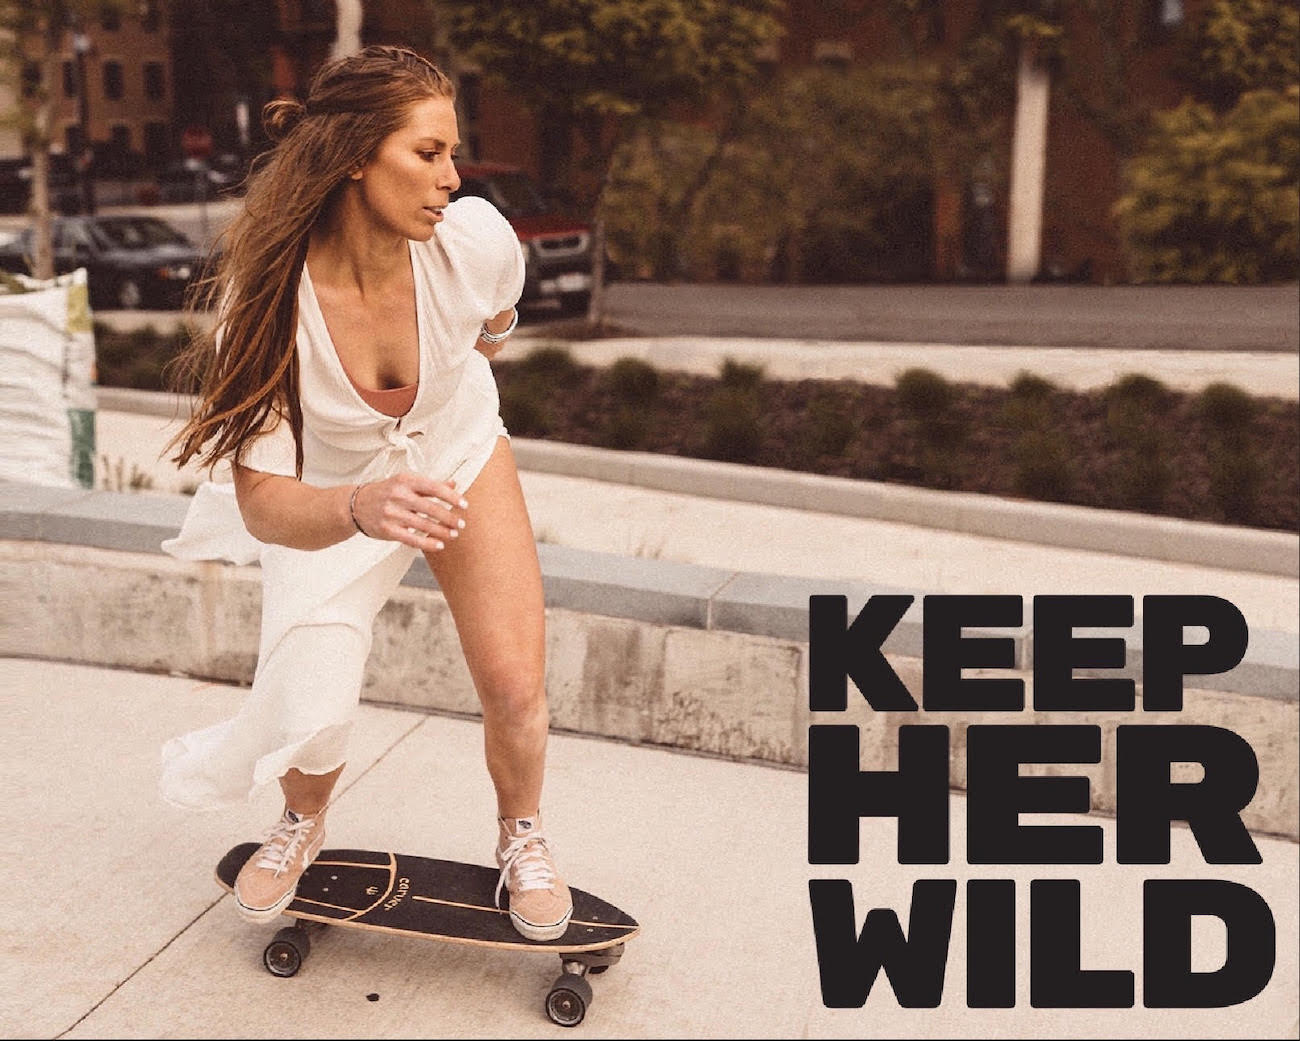 In 2018, Megs Gelfgot founded KEEP Her Wild, a female surf skating community that empowers women to find their fierce and feminine nature while shredding concrete waves and salty barrels. Since then, a movement has started, with KHW chapters launching across the country and internationally. / Image courtesy of KEEP Her Wild // Published: 3.3.21{&nbsp;}<p></p>